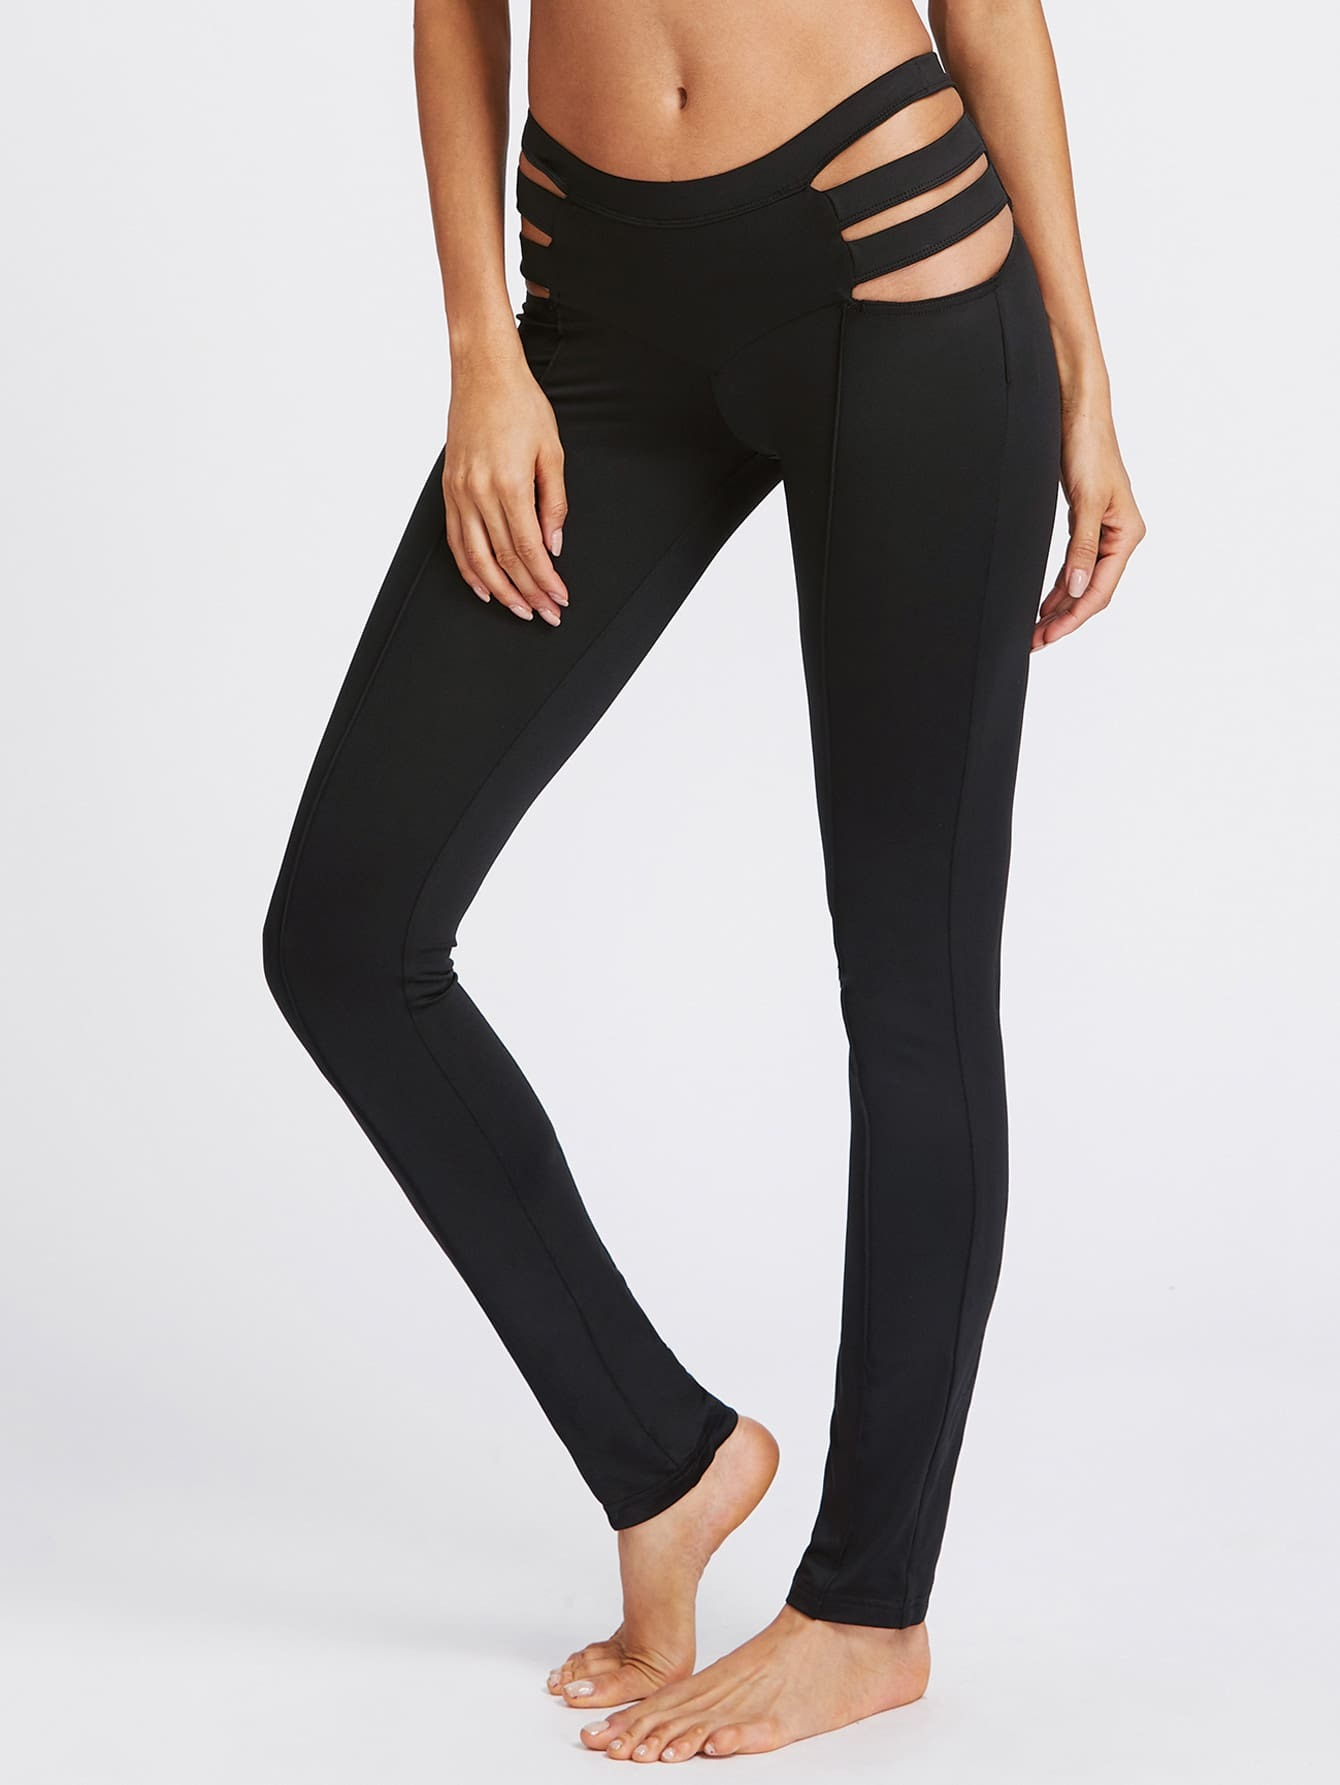 Ladder Cutout Side Leggings leggings170530701